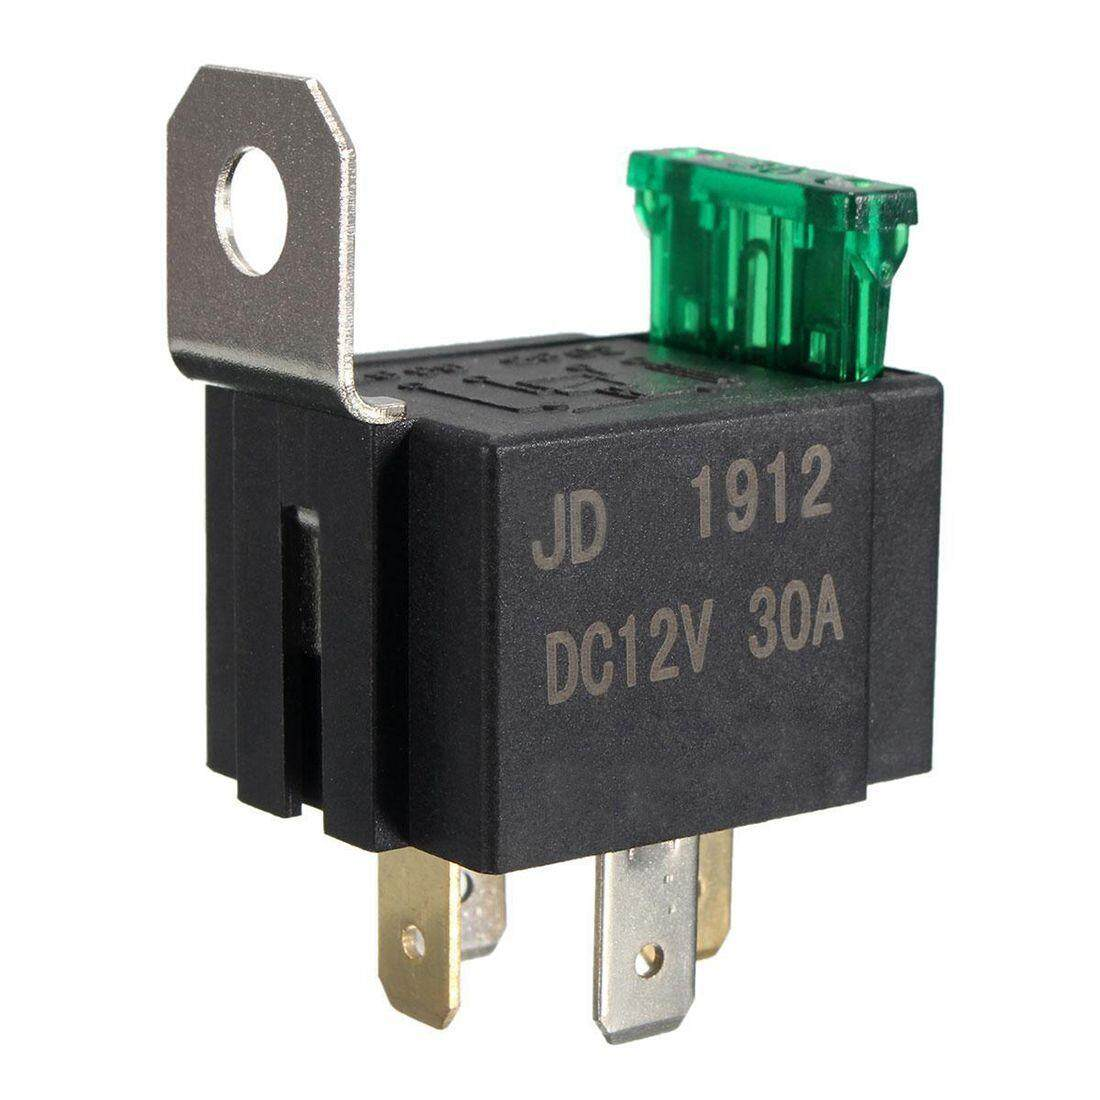 12v 30a 4 Pin Spst Auto Vehicle Relay Normally Opener Changeover Switch Switch By Benefitwen.